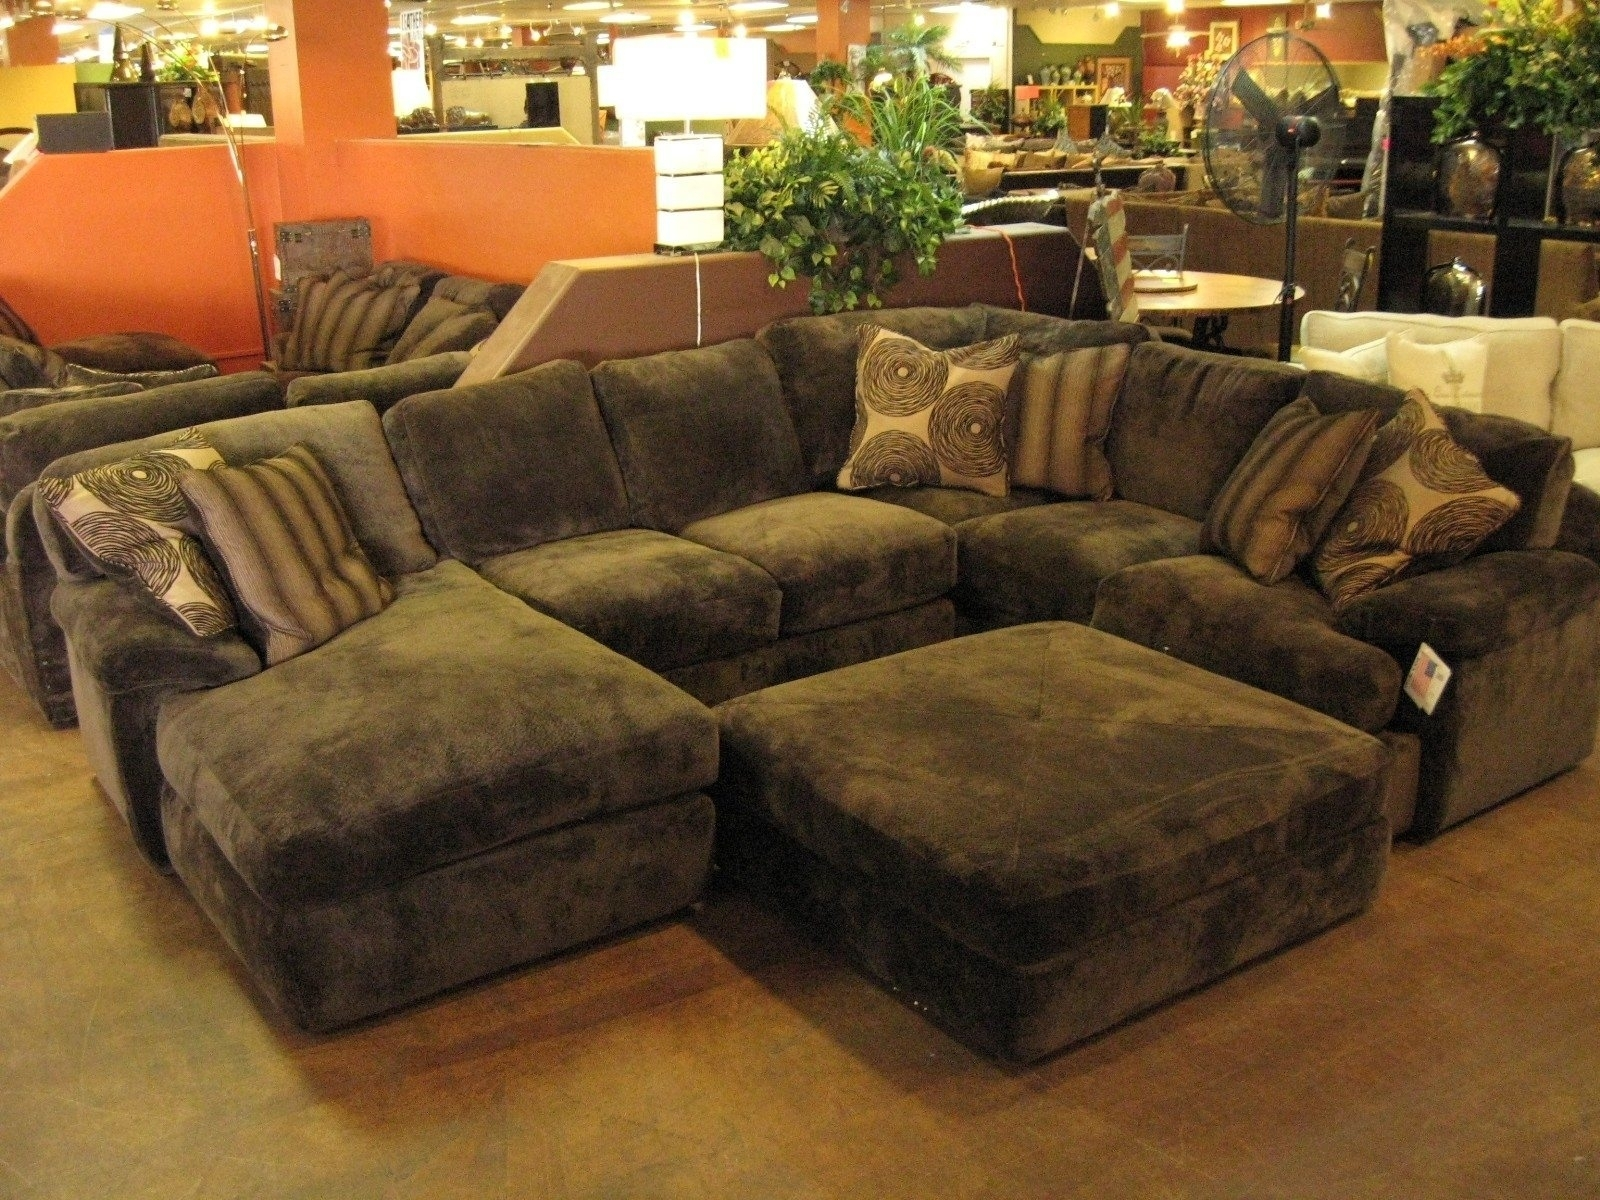 Stylish Sectional Sofa With Oversized Ottoman – Mediasupload With Sectionals With Oversized Ottoman (View 2 of 15)